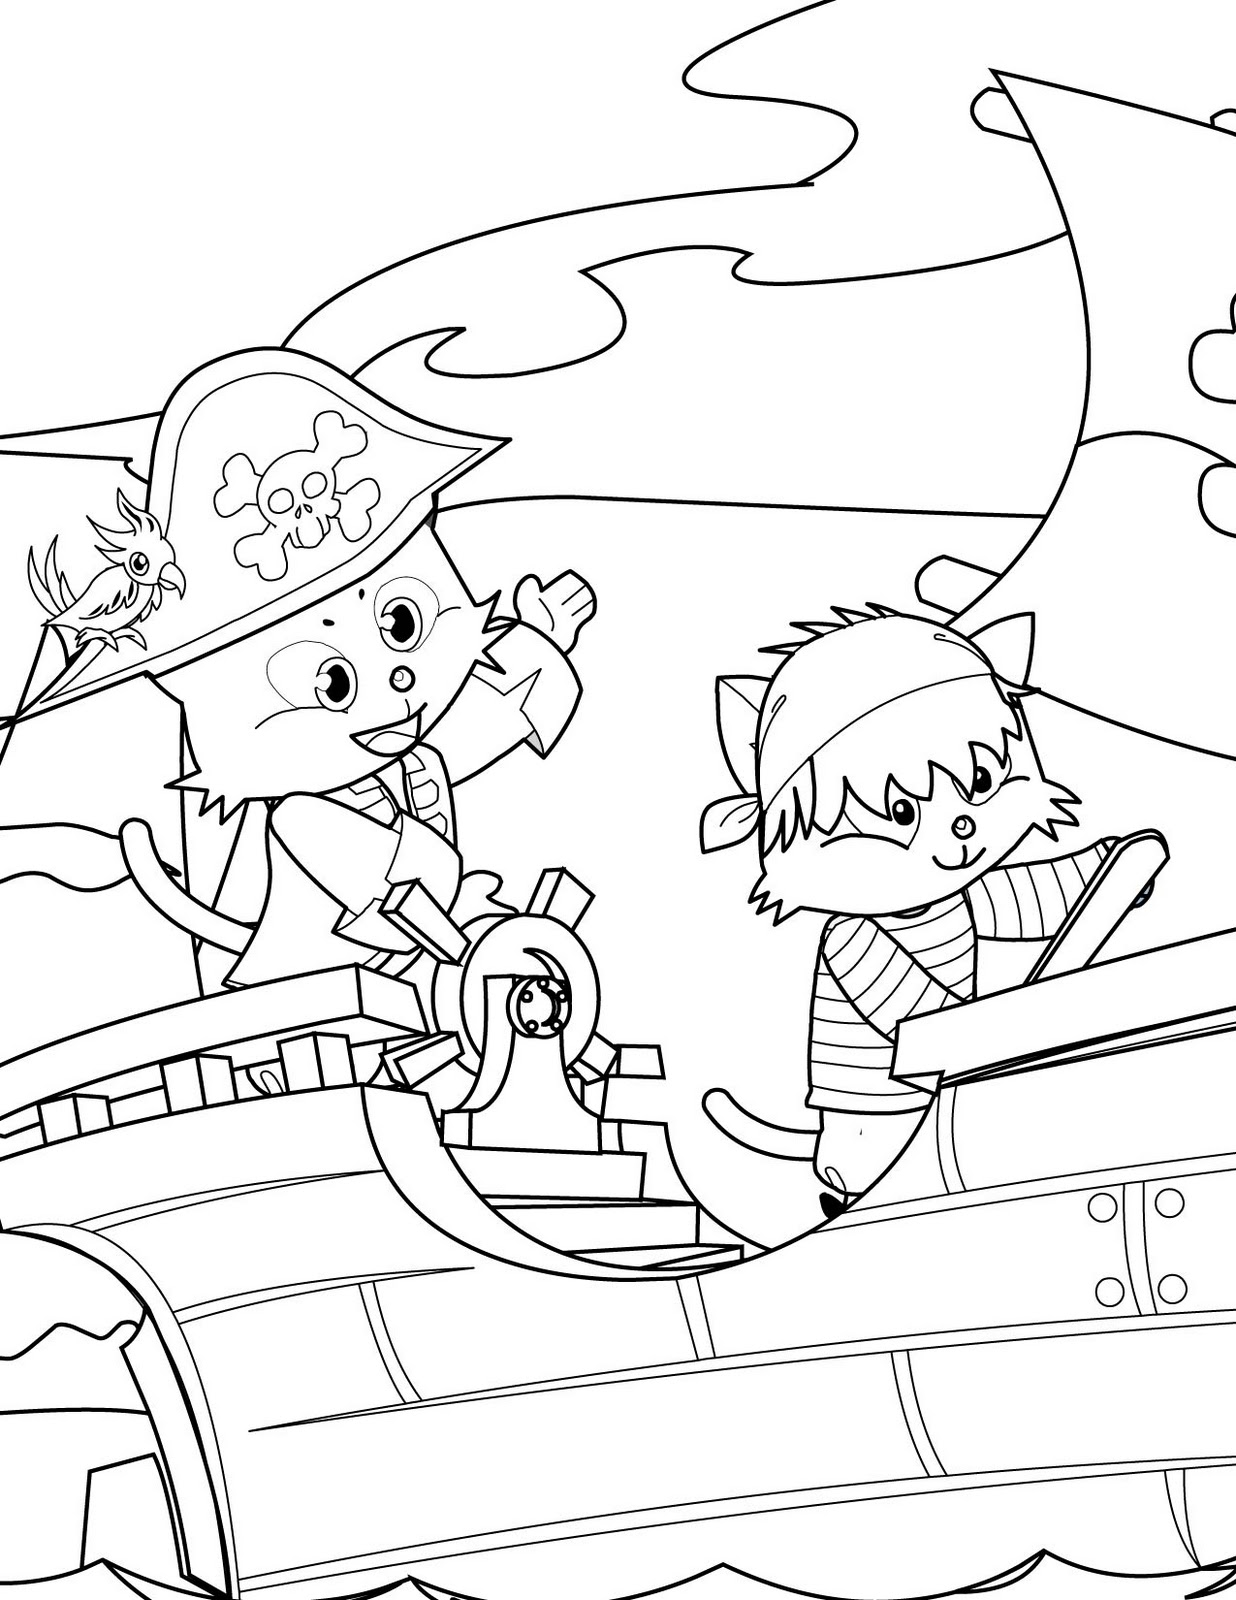 pirate images to colour pittsburgh pirates coloring pages learny kids to colour images pirate